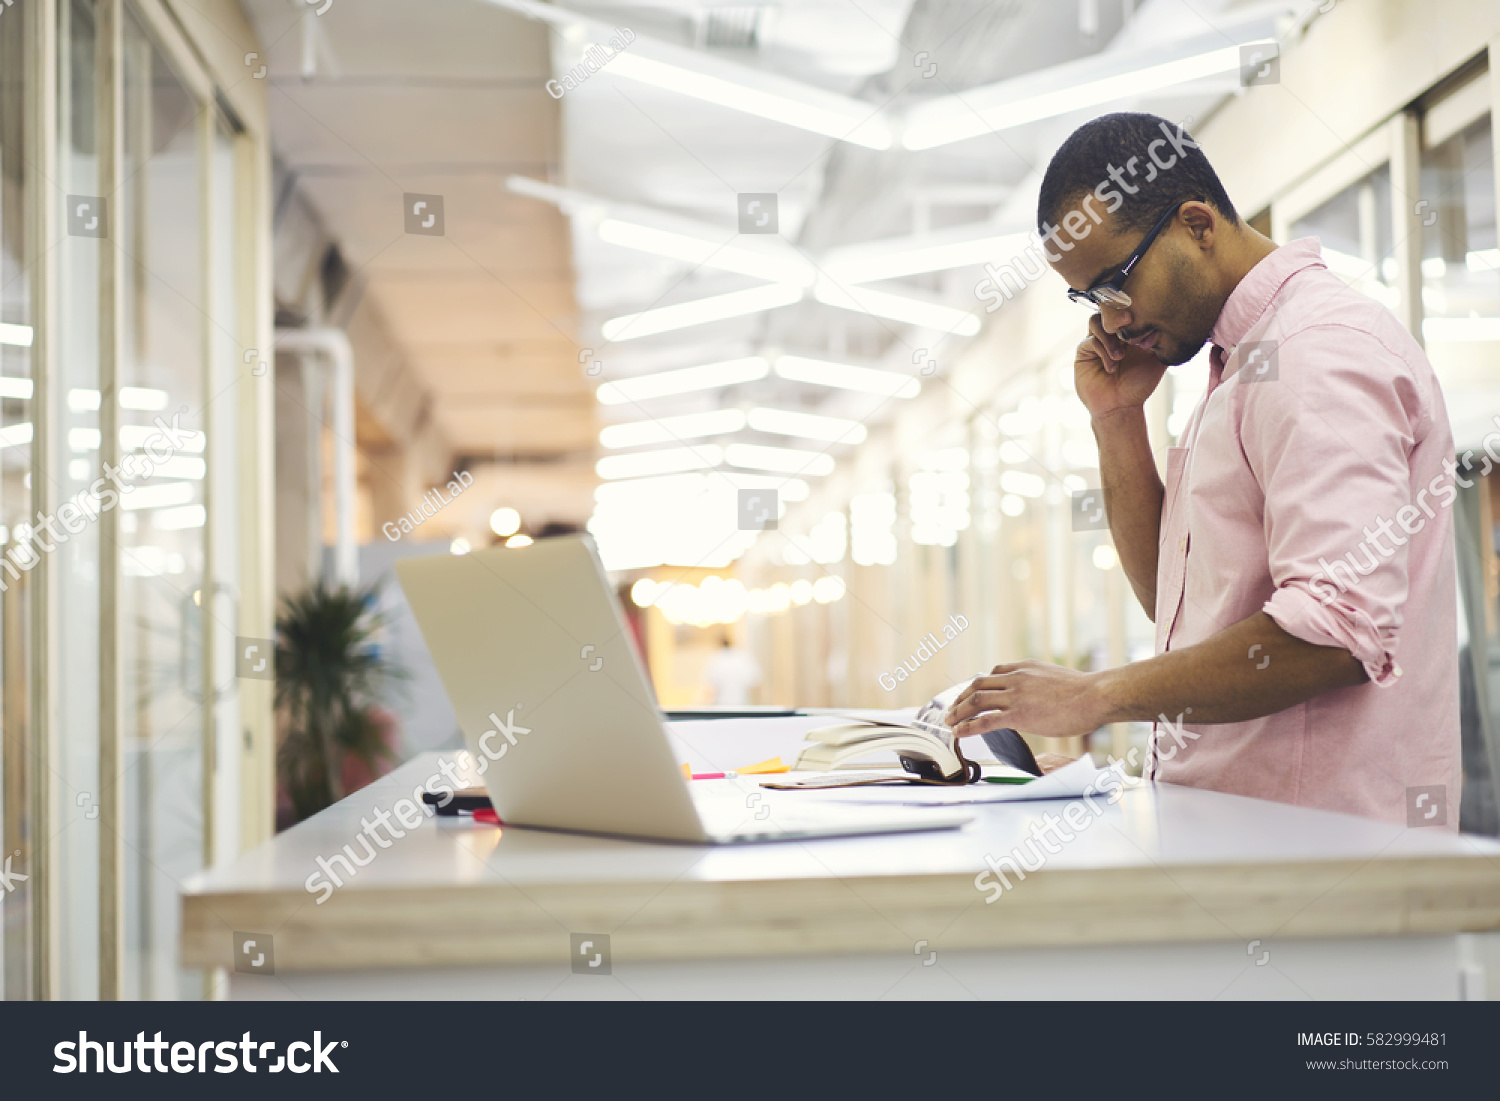 skilled male administrative manager architectural company stock stock photo skilled male administrative manager of architectural company